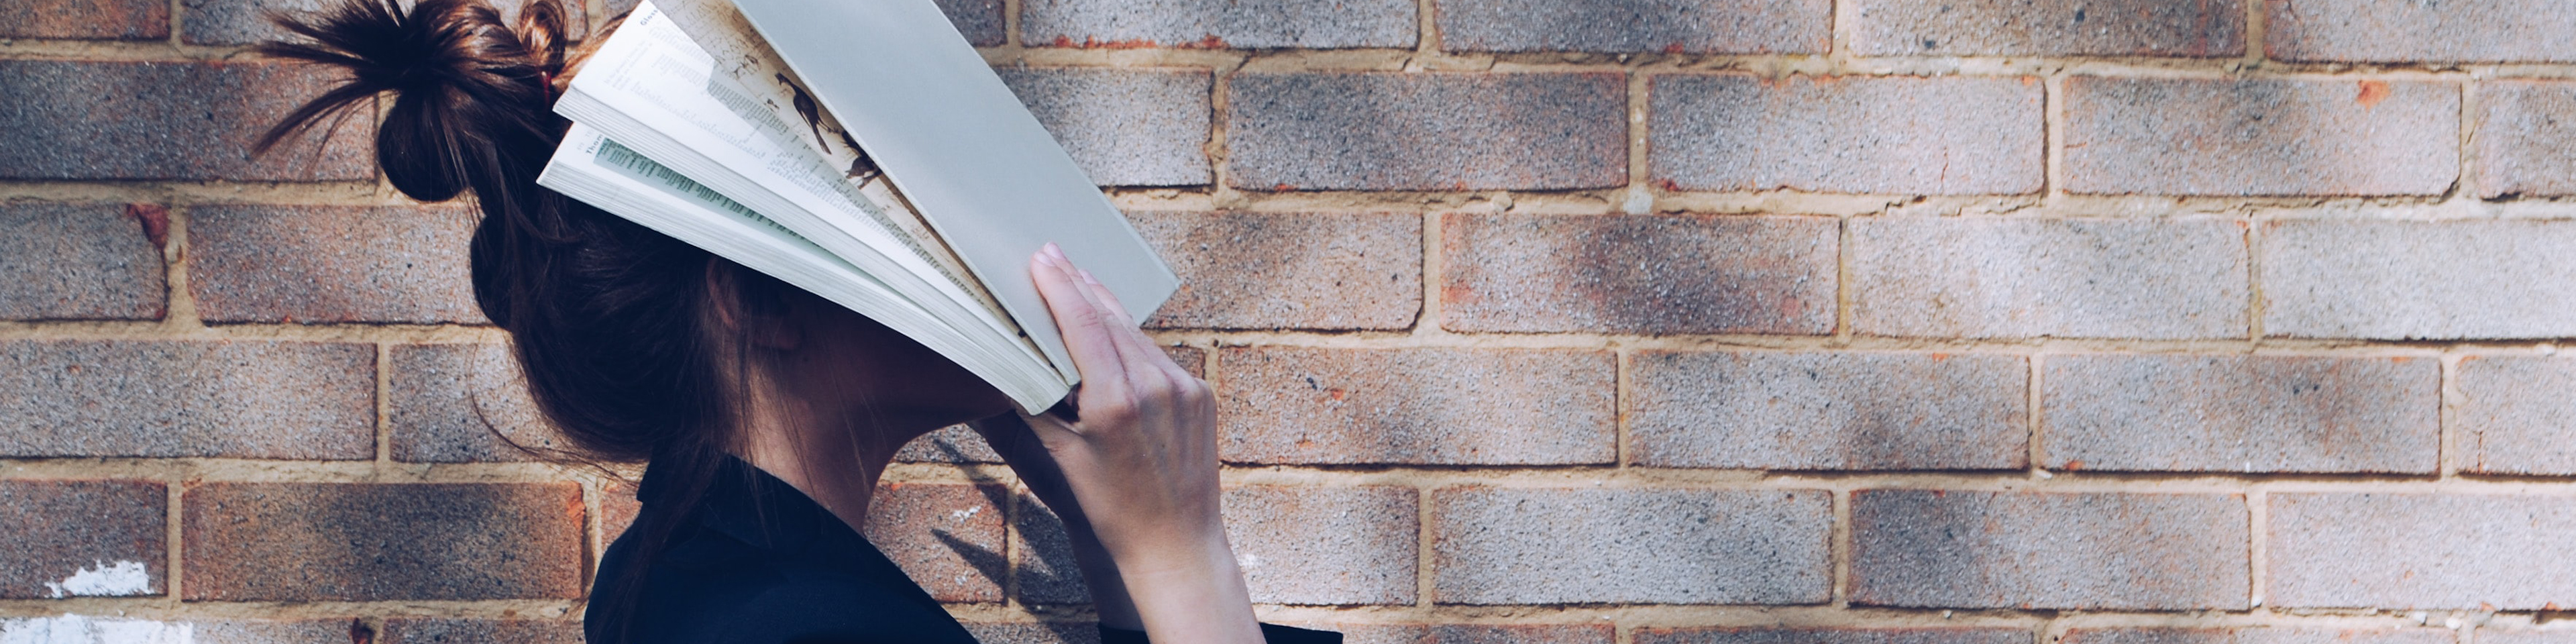 Woman standing outside next to brick wall, holding her open book up over her face